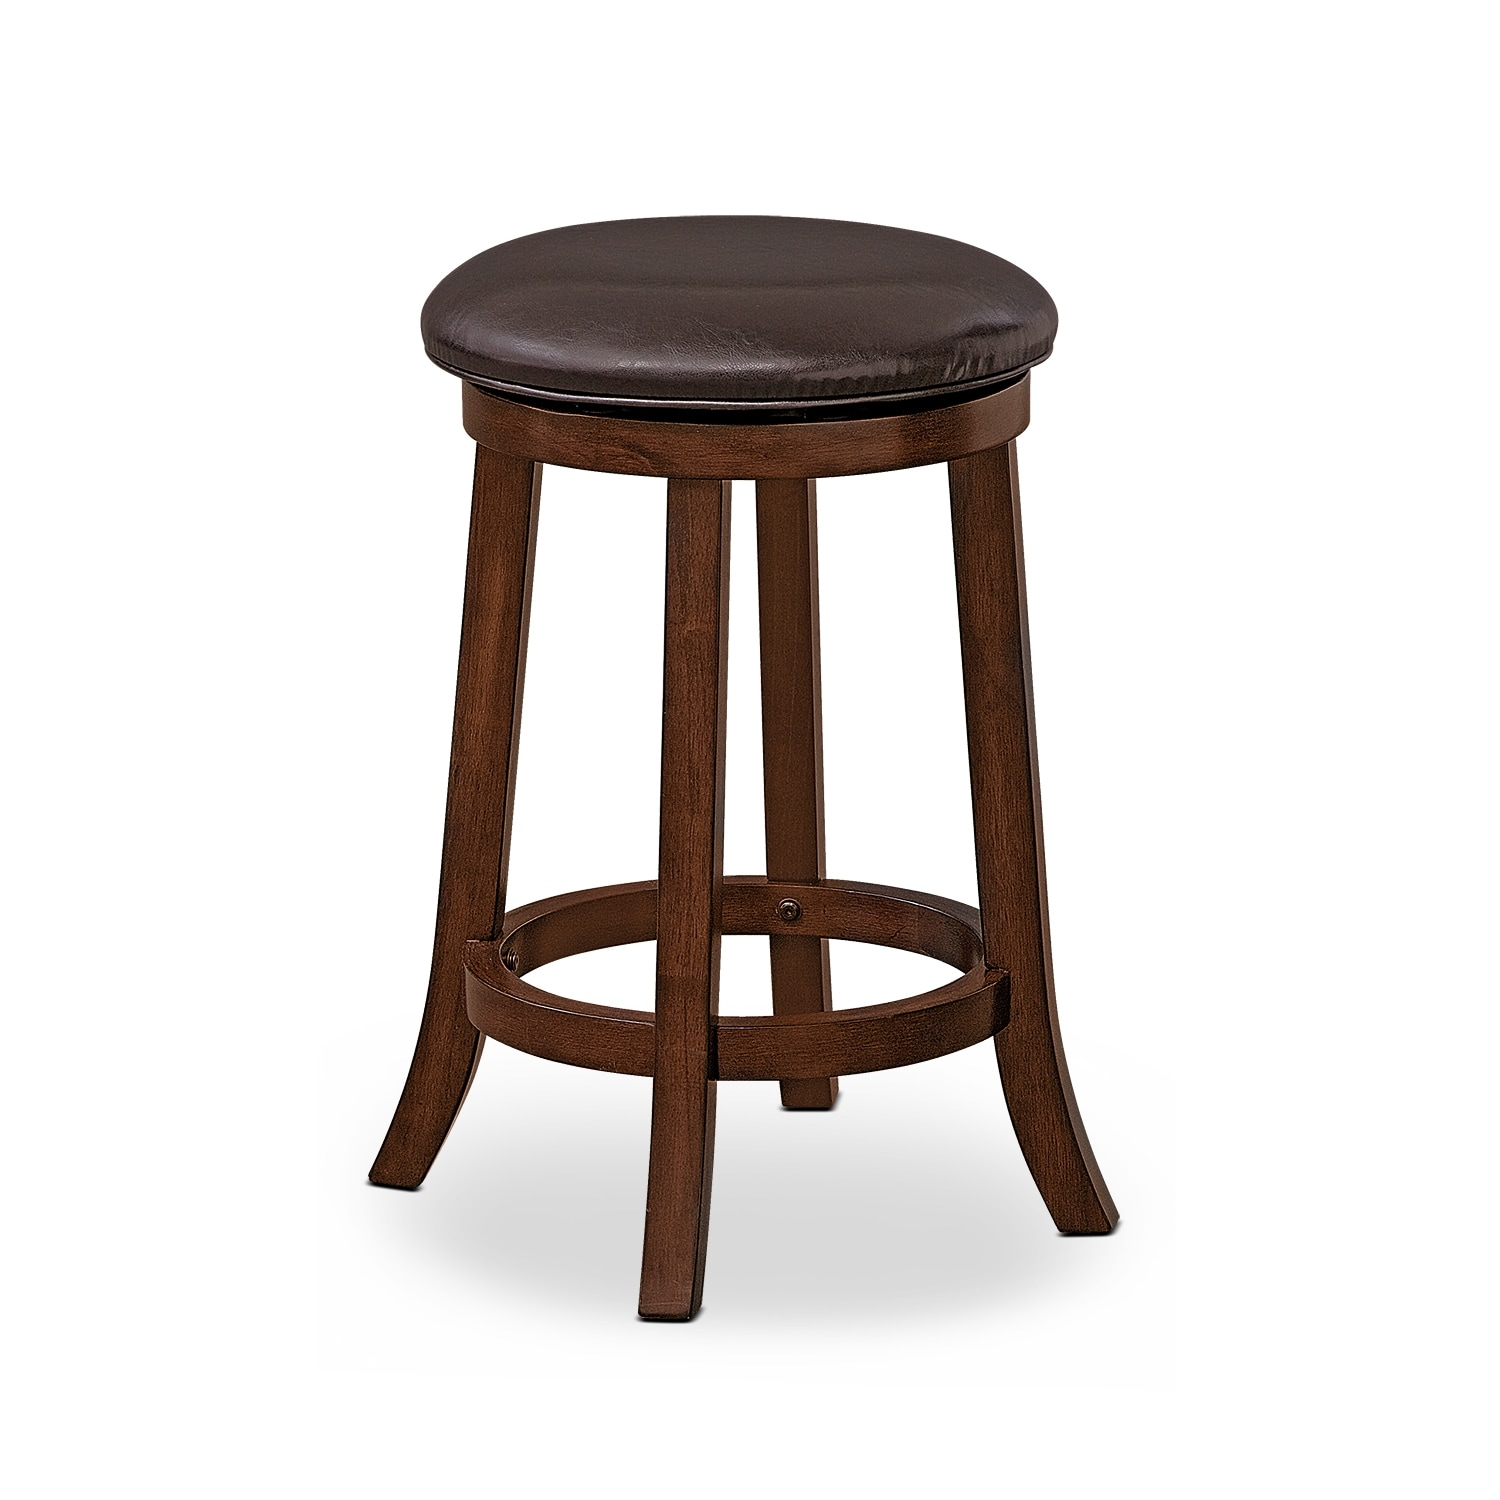 Dining Room Furniture - Tinker Counter-Height Stool